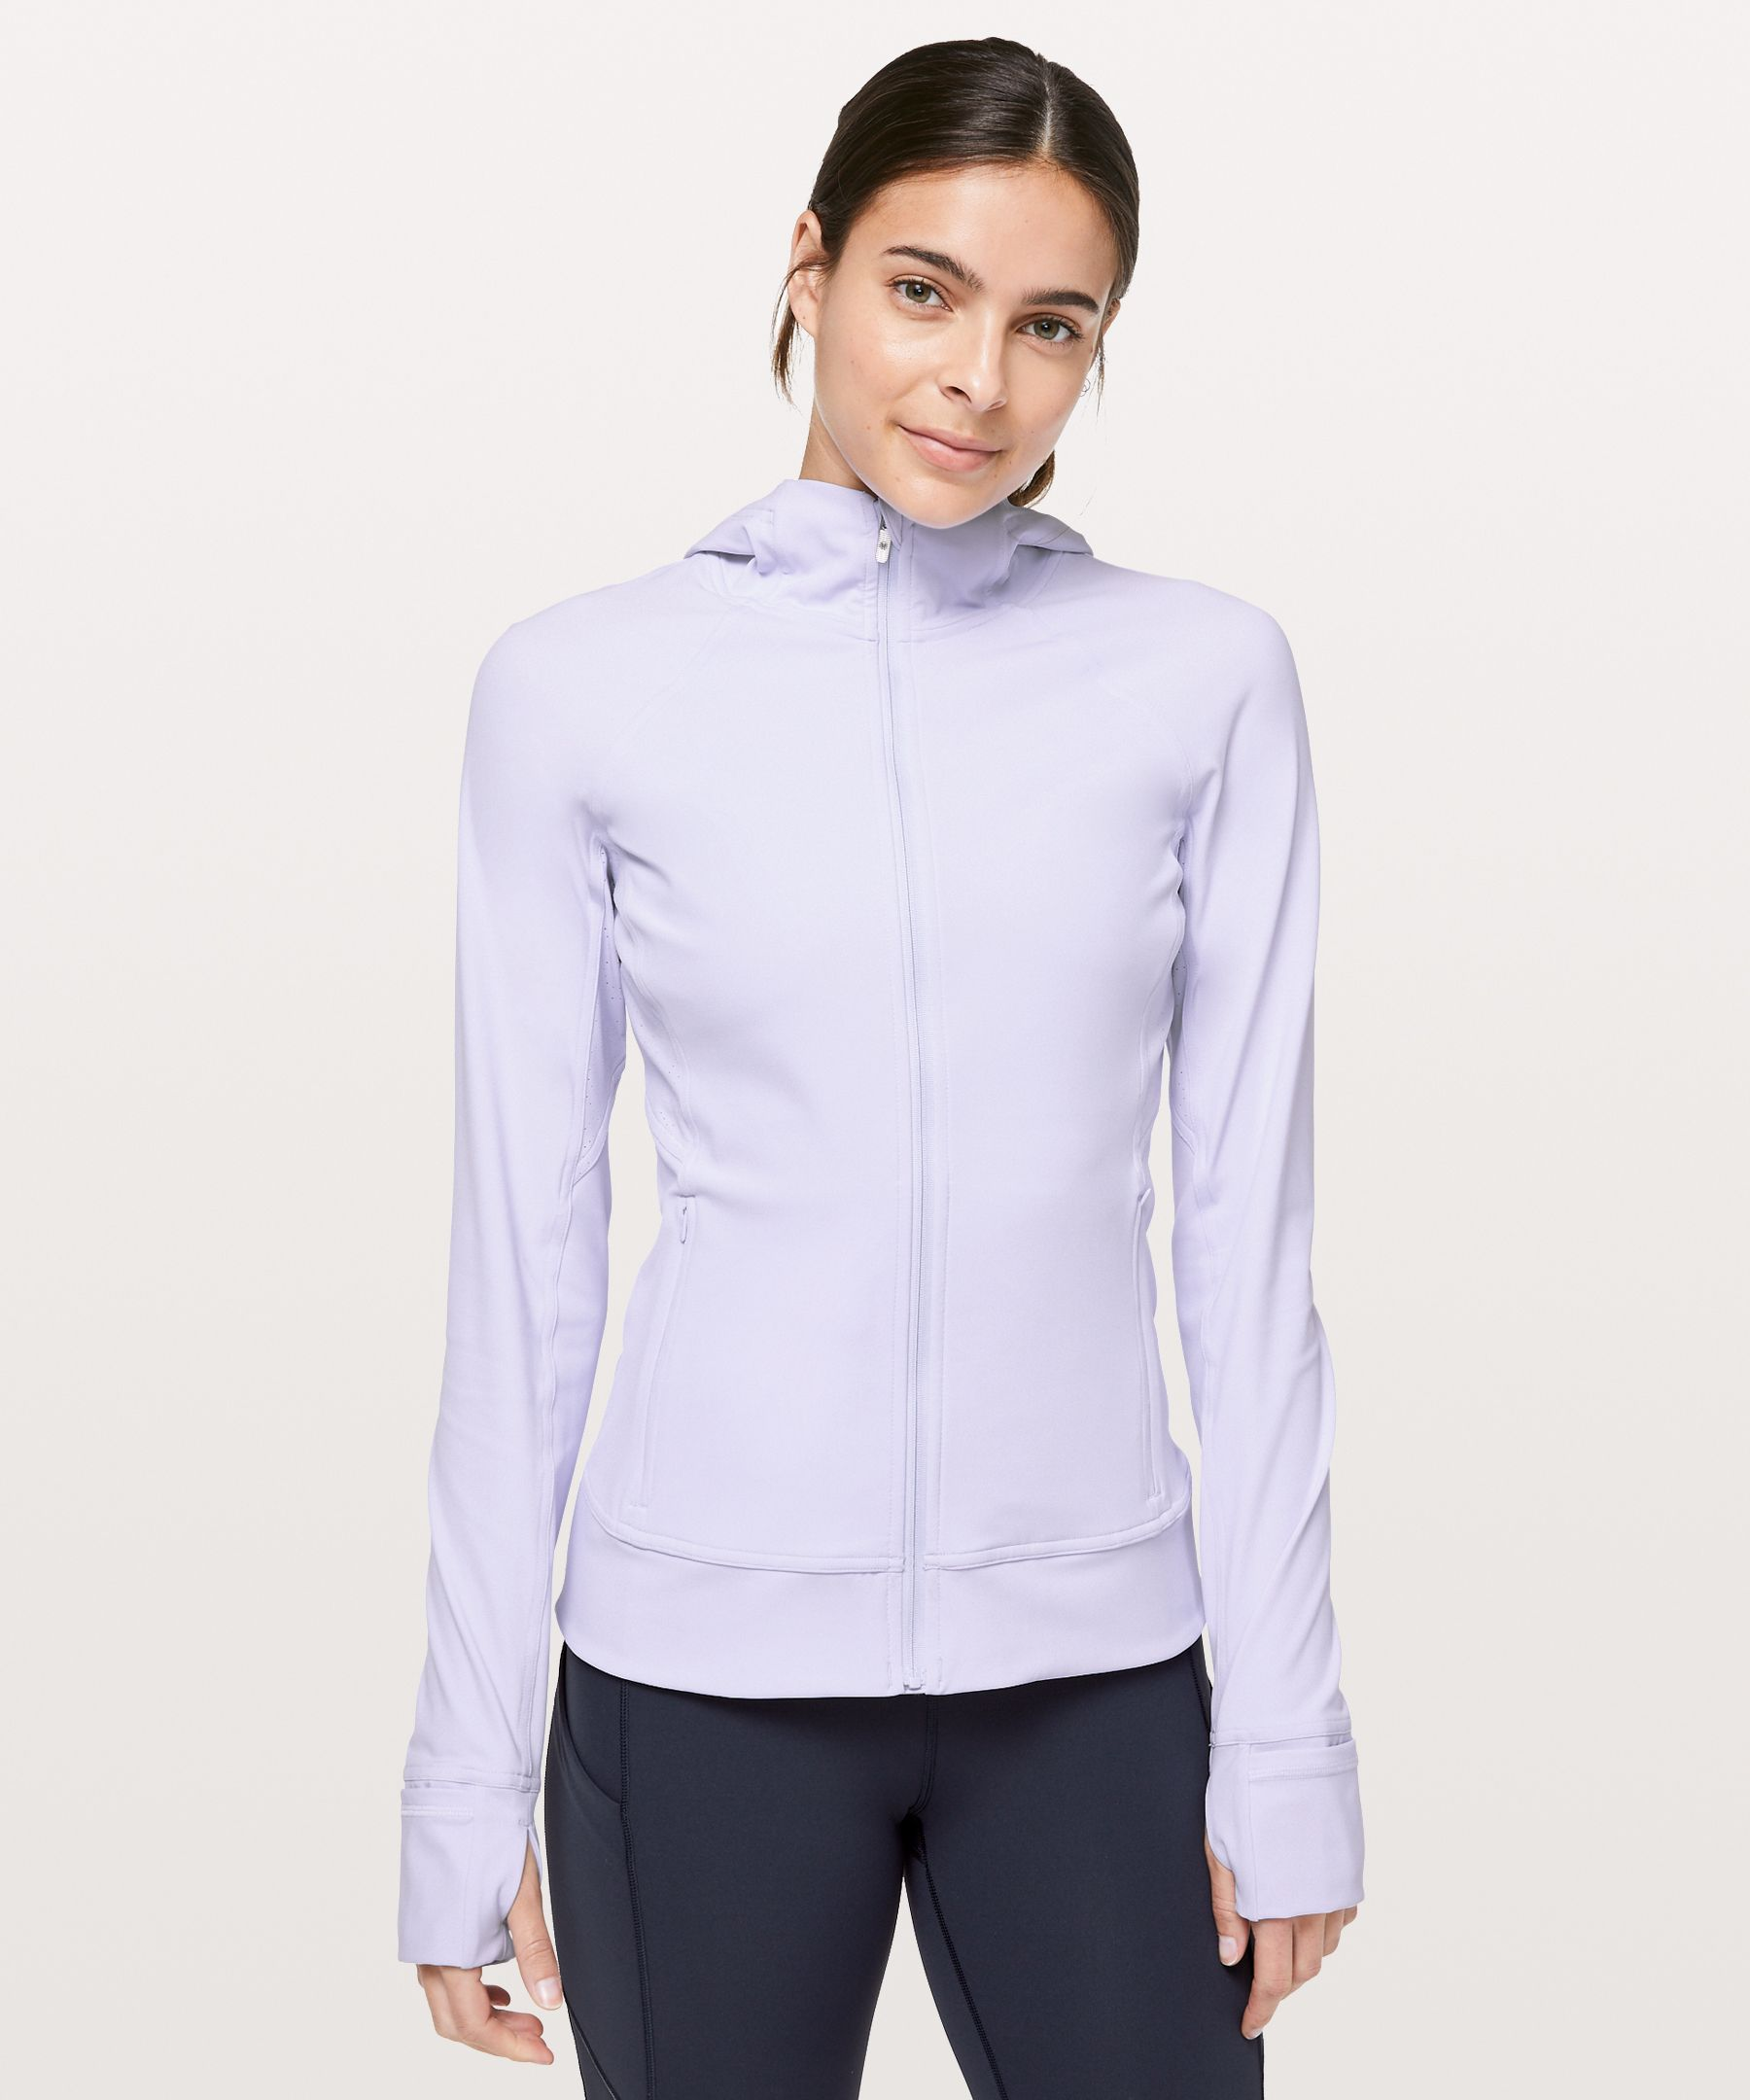 This technical run jacket has  ventilation where you need it  most, while the slim fit makes  for easy layering.